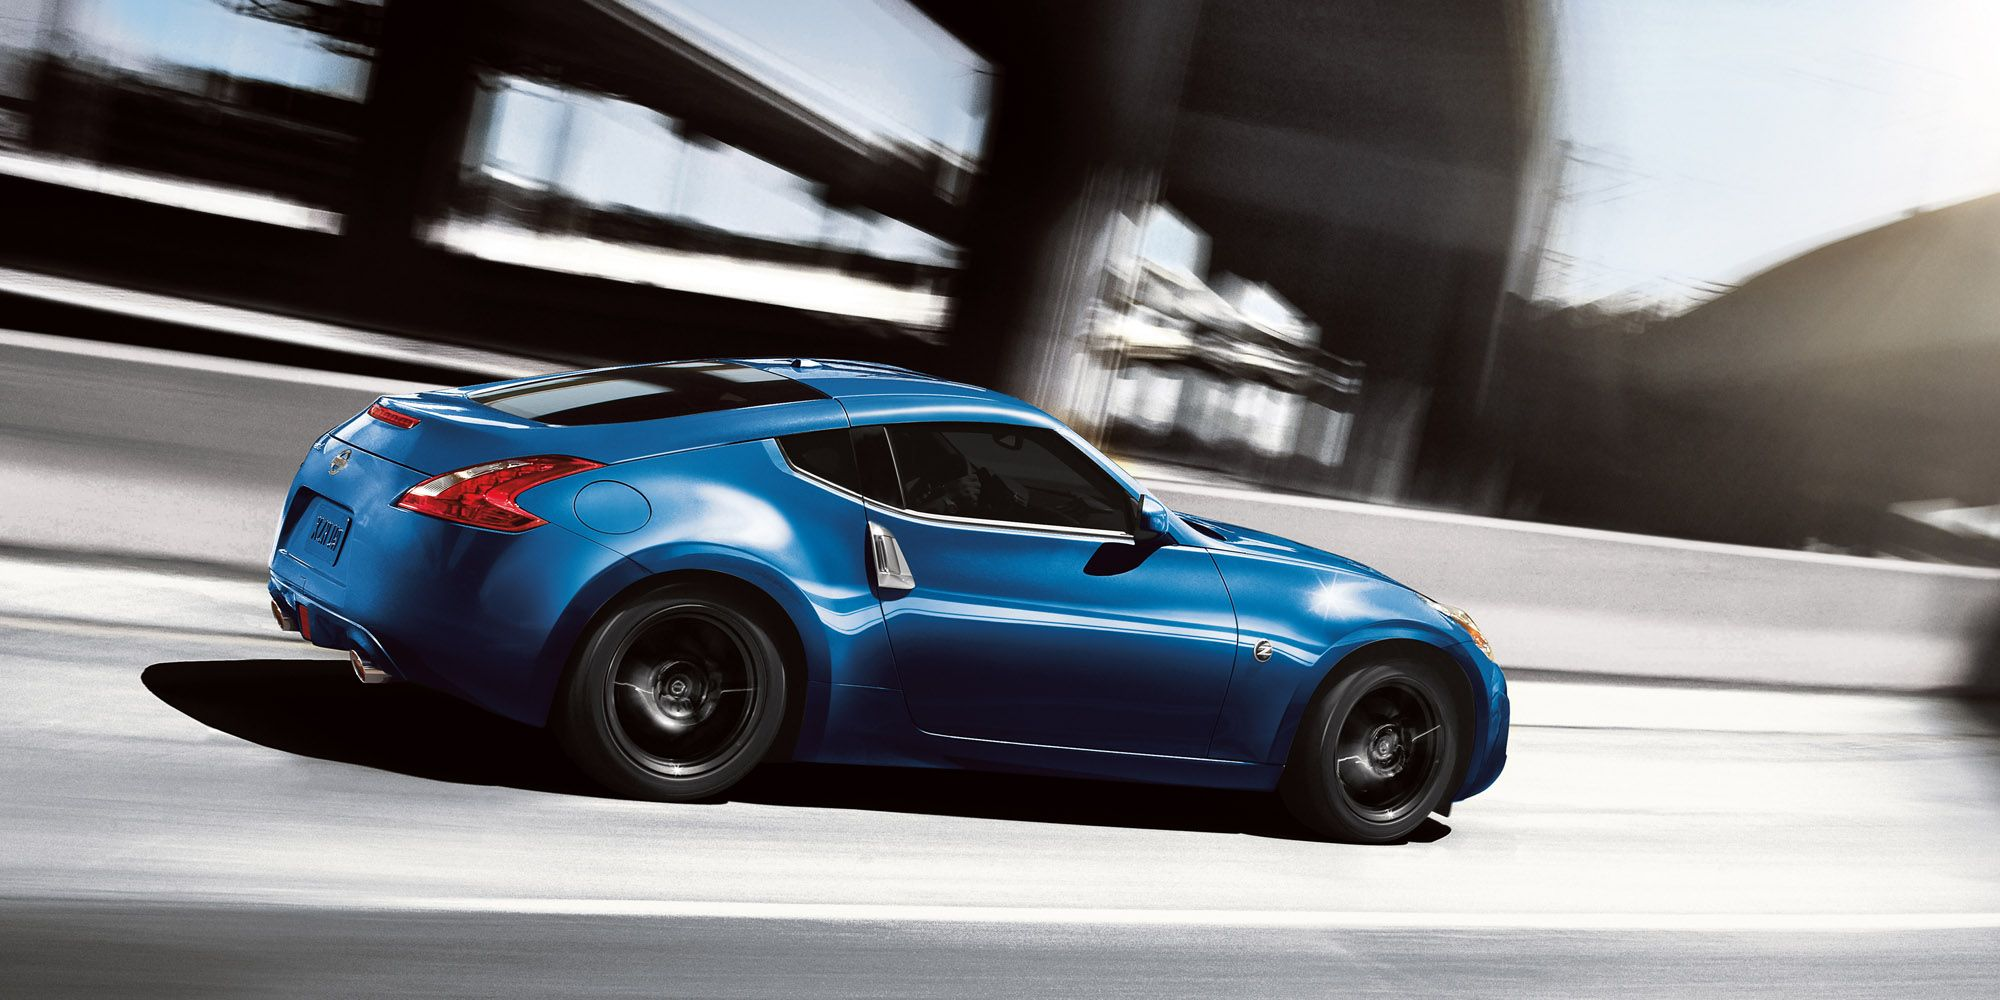 The 2015 Nissan 370Z continues to offer extraordinary performance design and an unmatched heritage as one of the most iconic sports cars in automotive history.